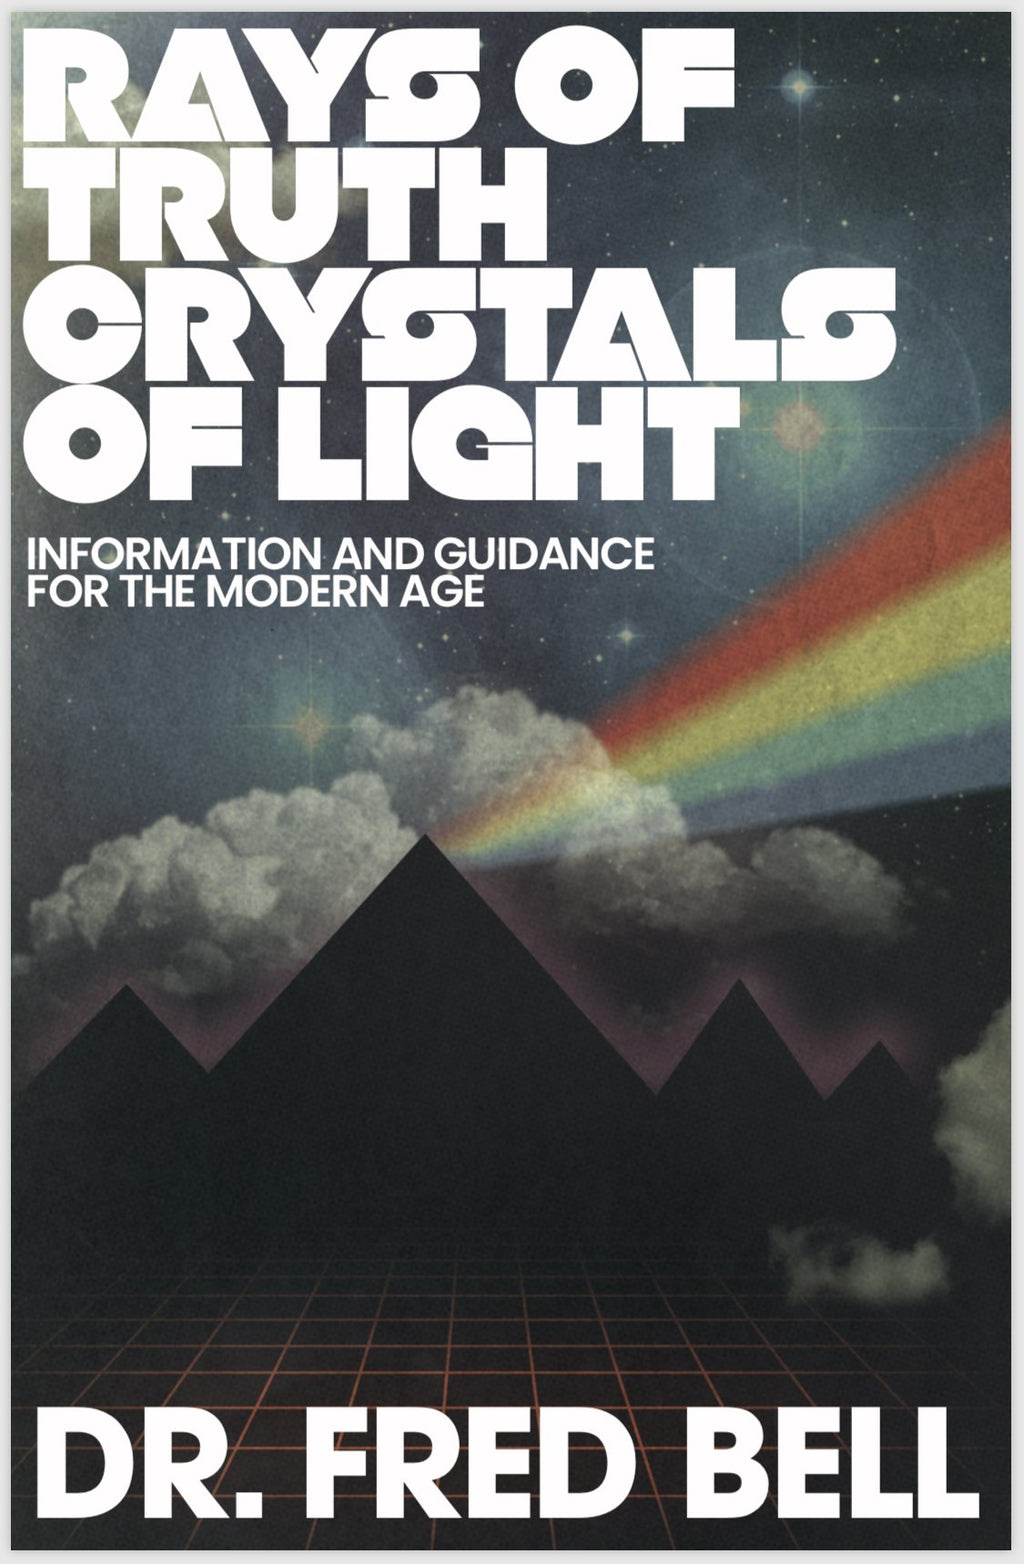 Rays of Truth - Crystals of Light - eBook by Dr. Fred Bell - Pyradyne